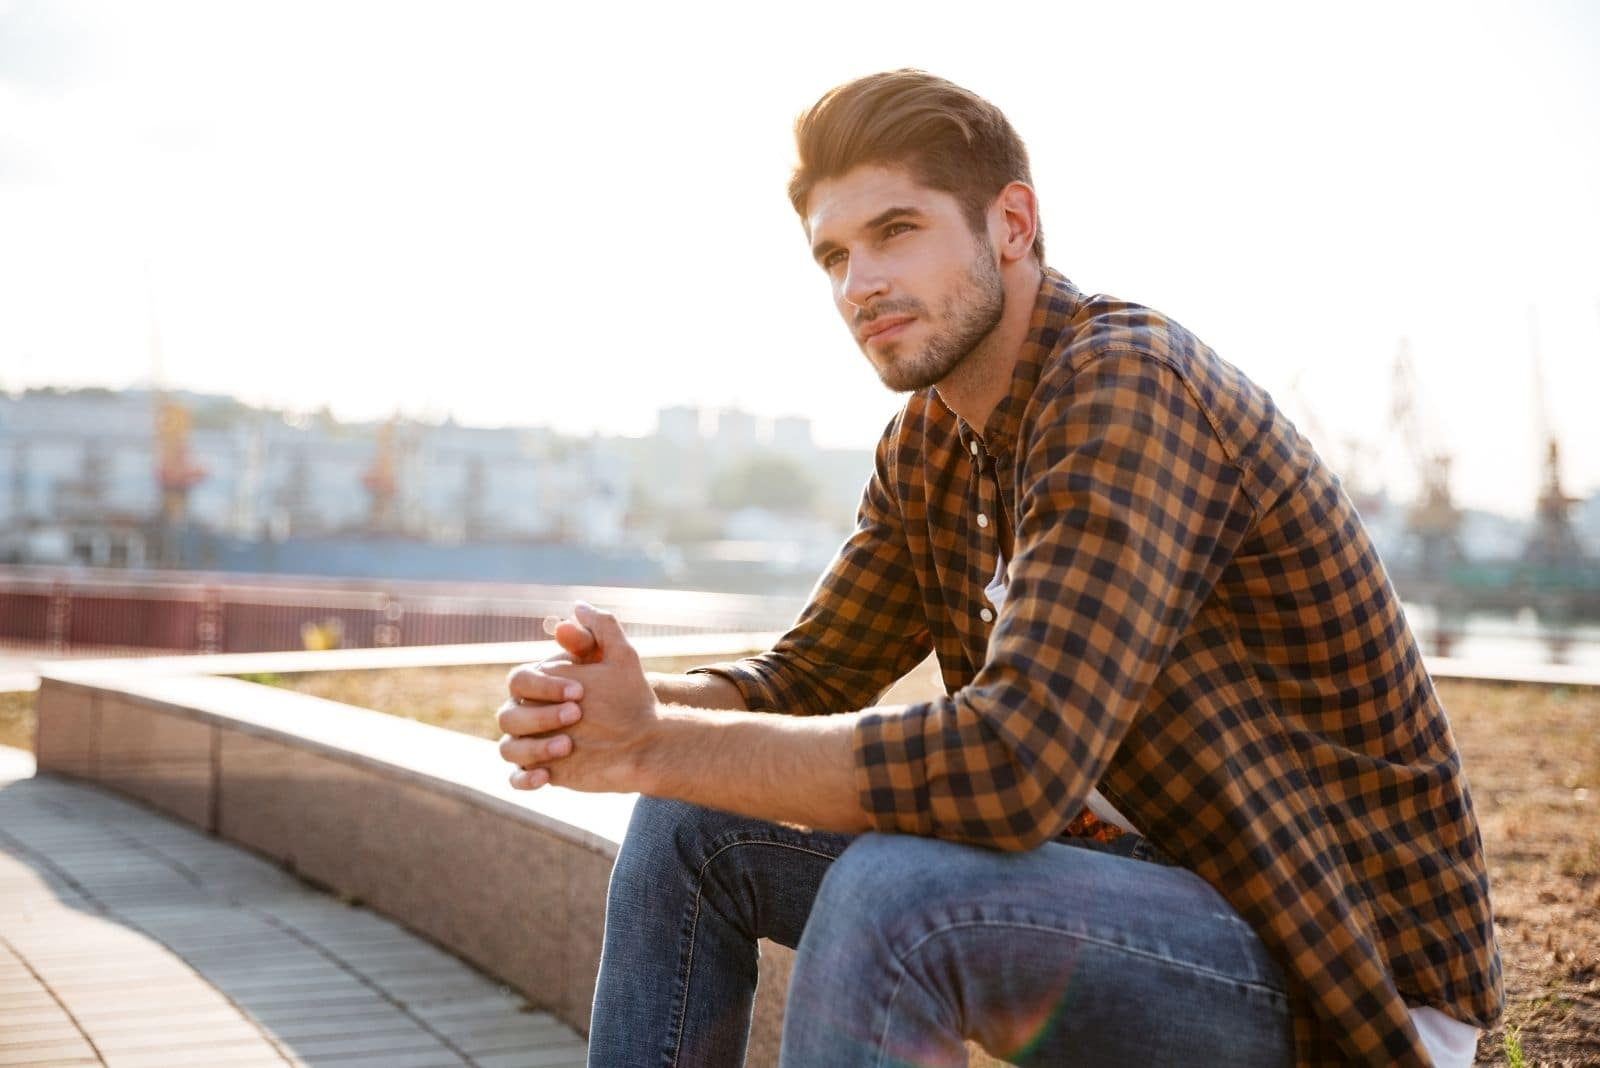 man sitting by the roadside alone thinking deeply